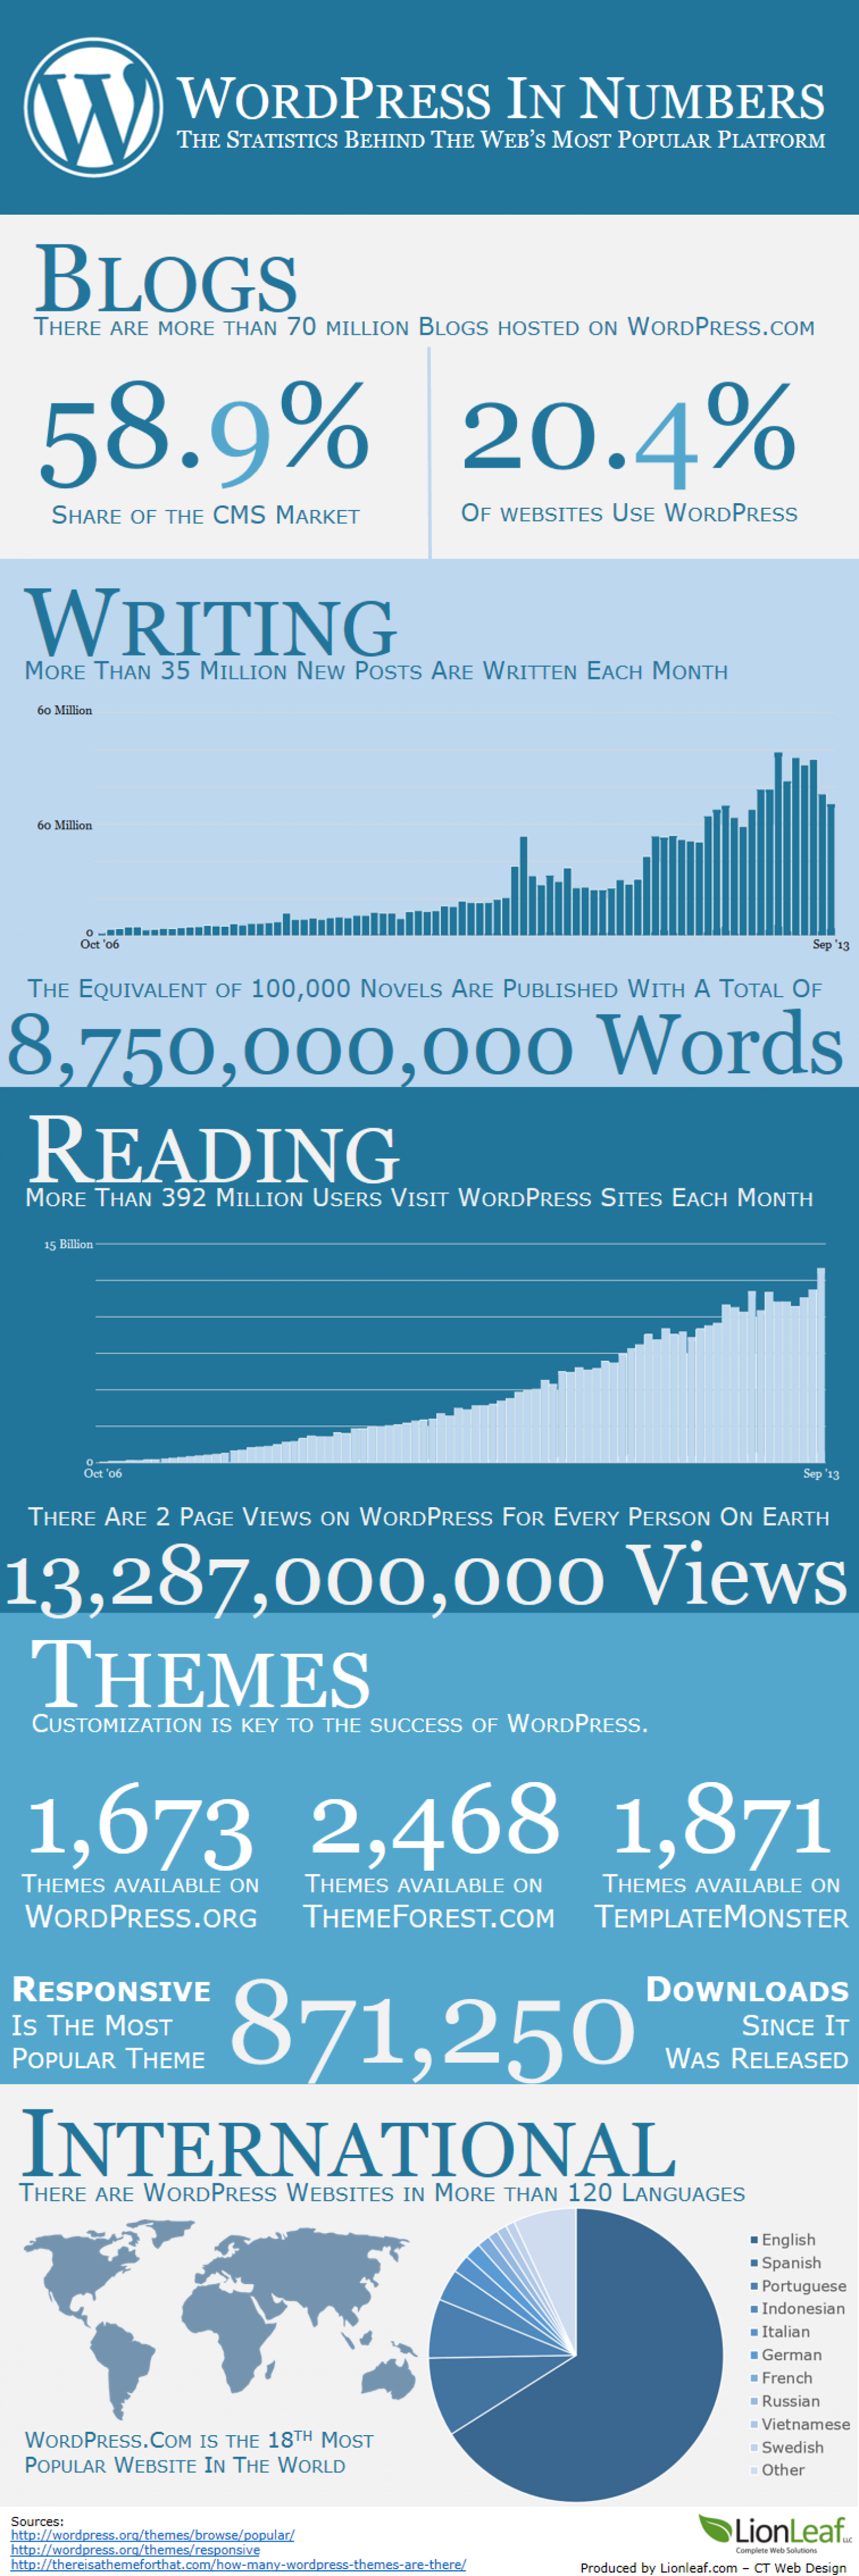 WordPress in Numbers Infographic